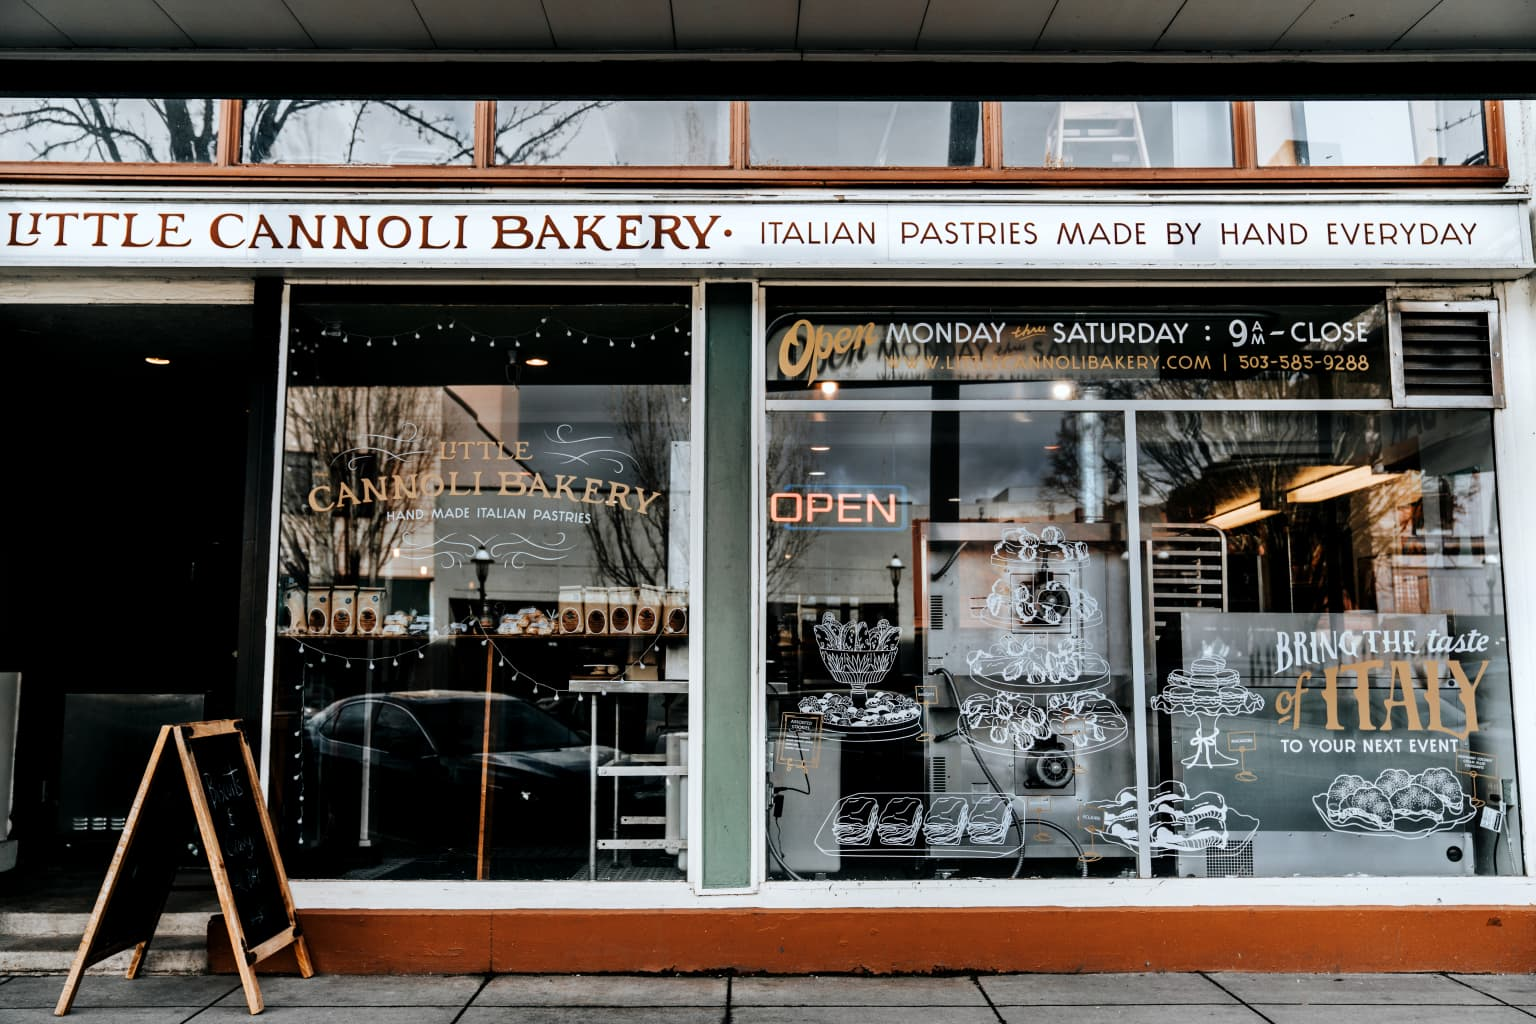 Little Cannoli Bakery